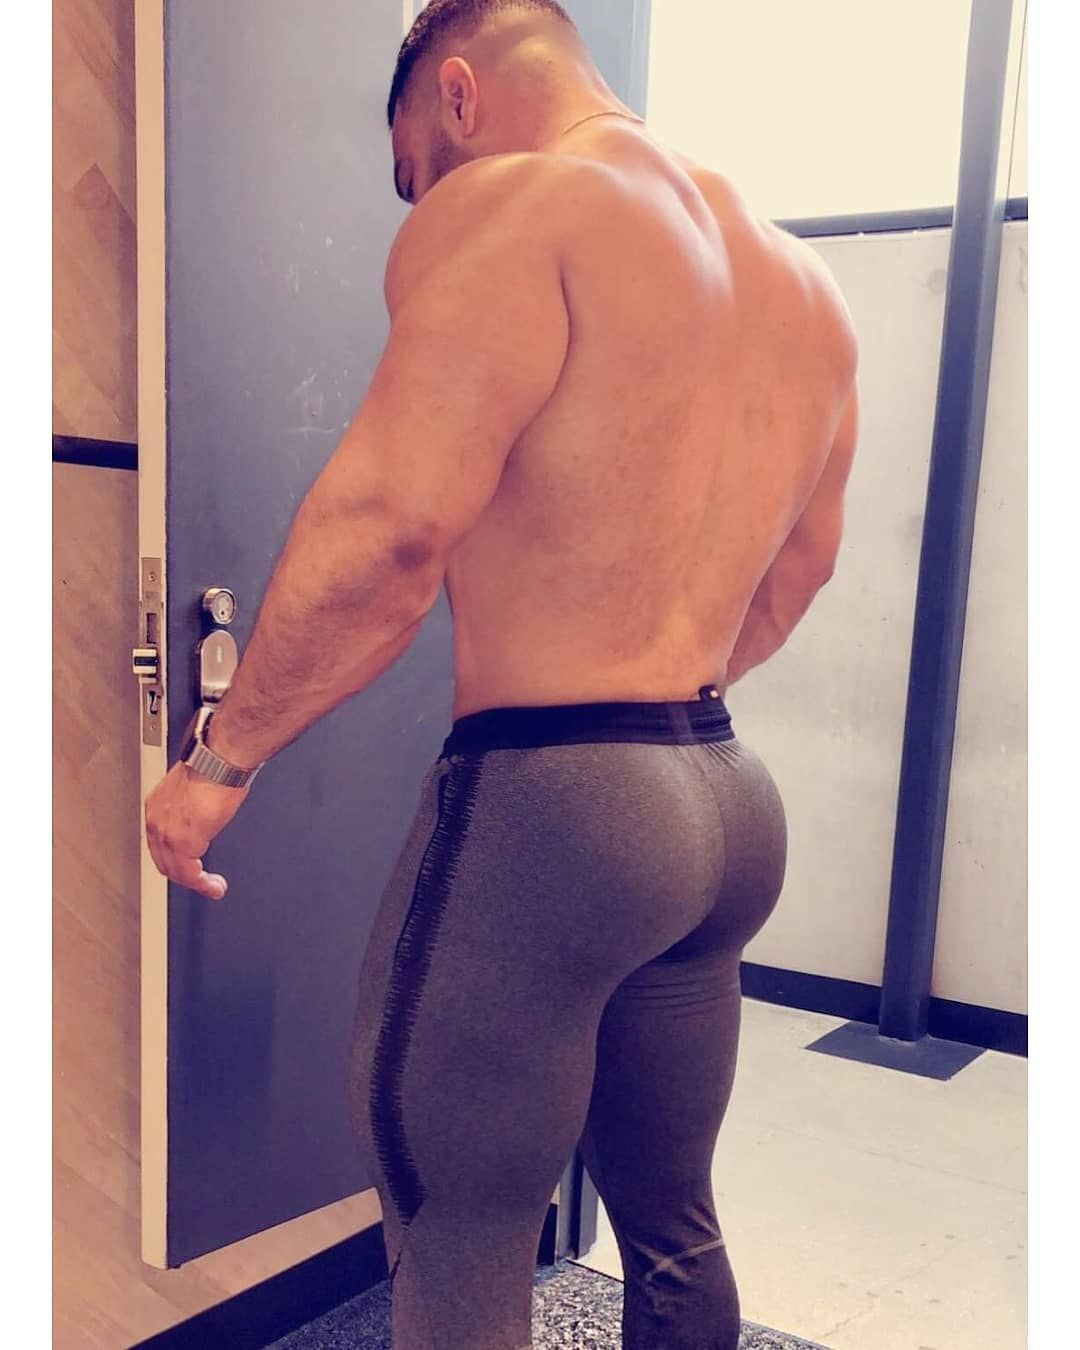 Muscle Video Gay pin on dailybody